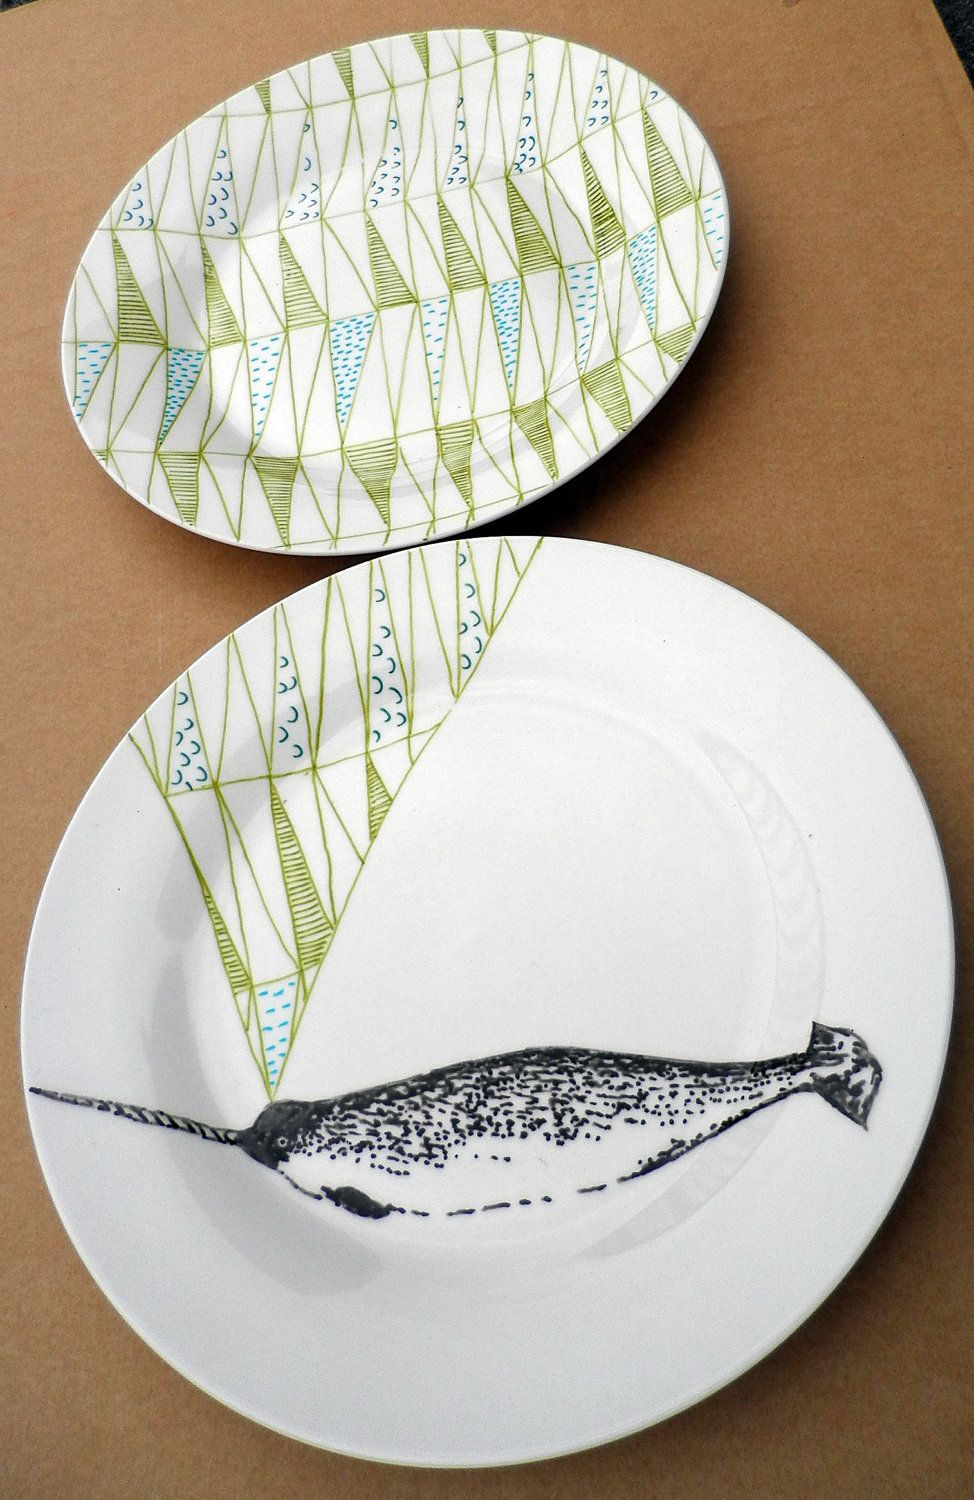 Narwhal Whale Geometric Design Plates hand illustrated porcelain.